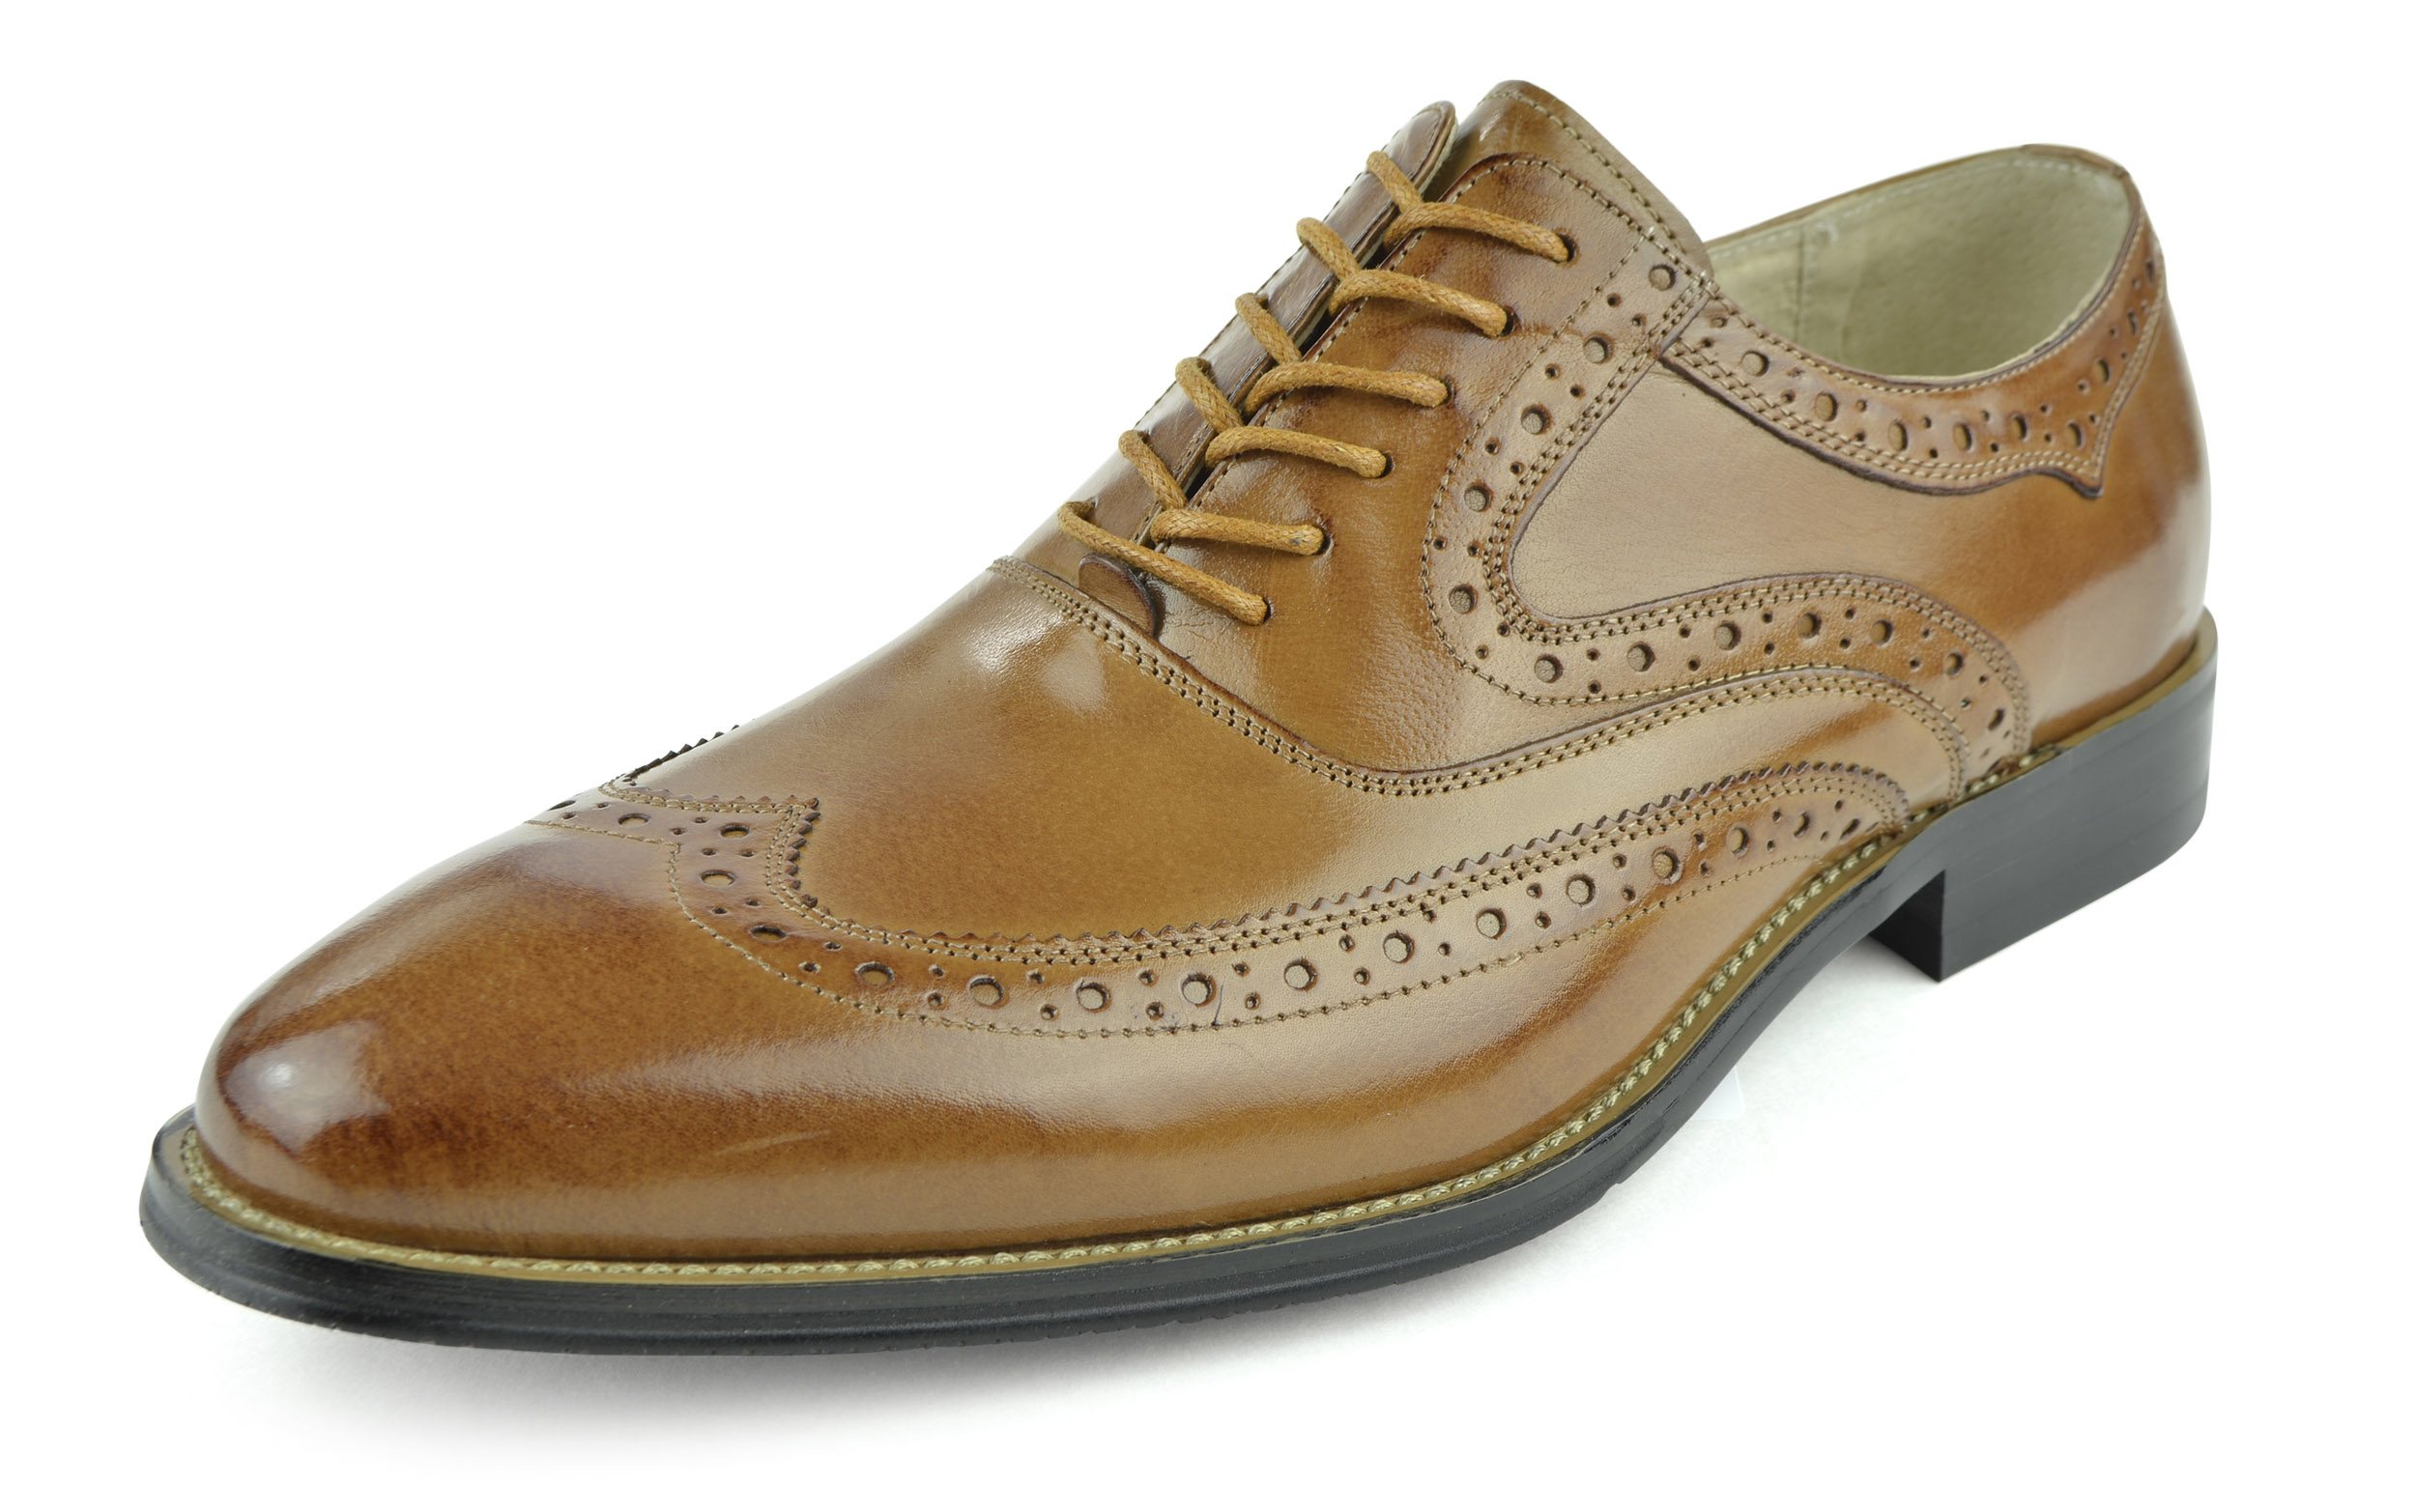 Moda Di Raza - Men's Oxford Lace Dress Shoes Sleek Trendy Light Shine - Tan/12